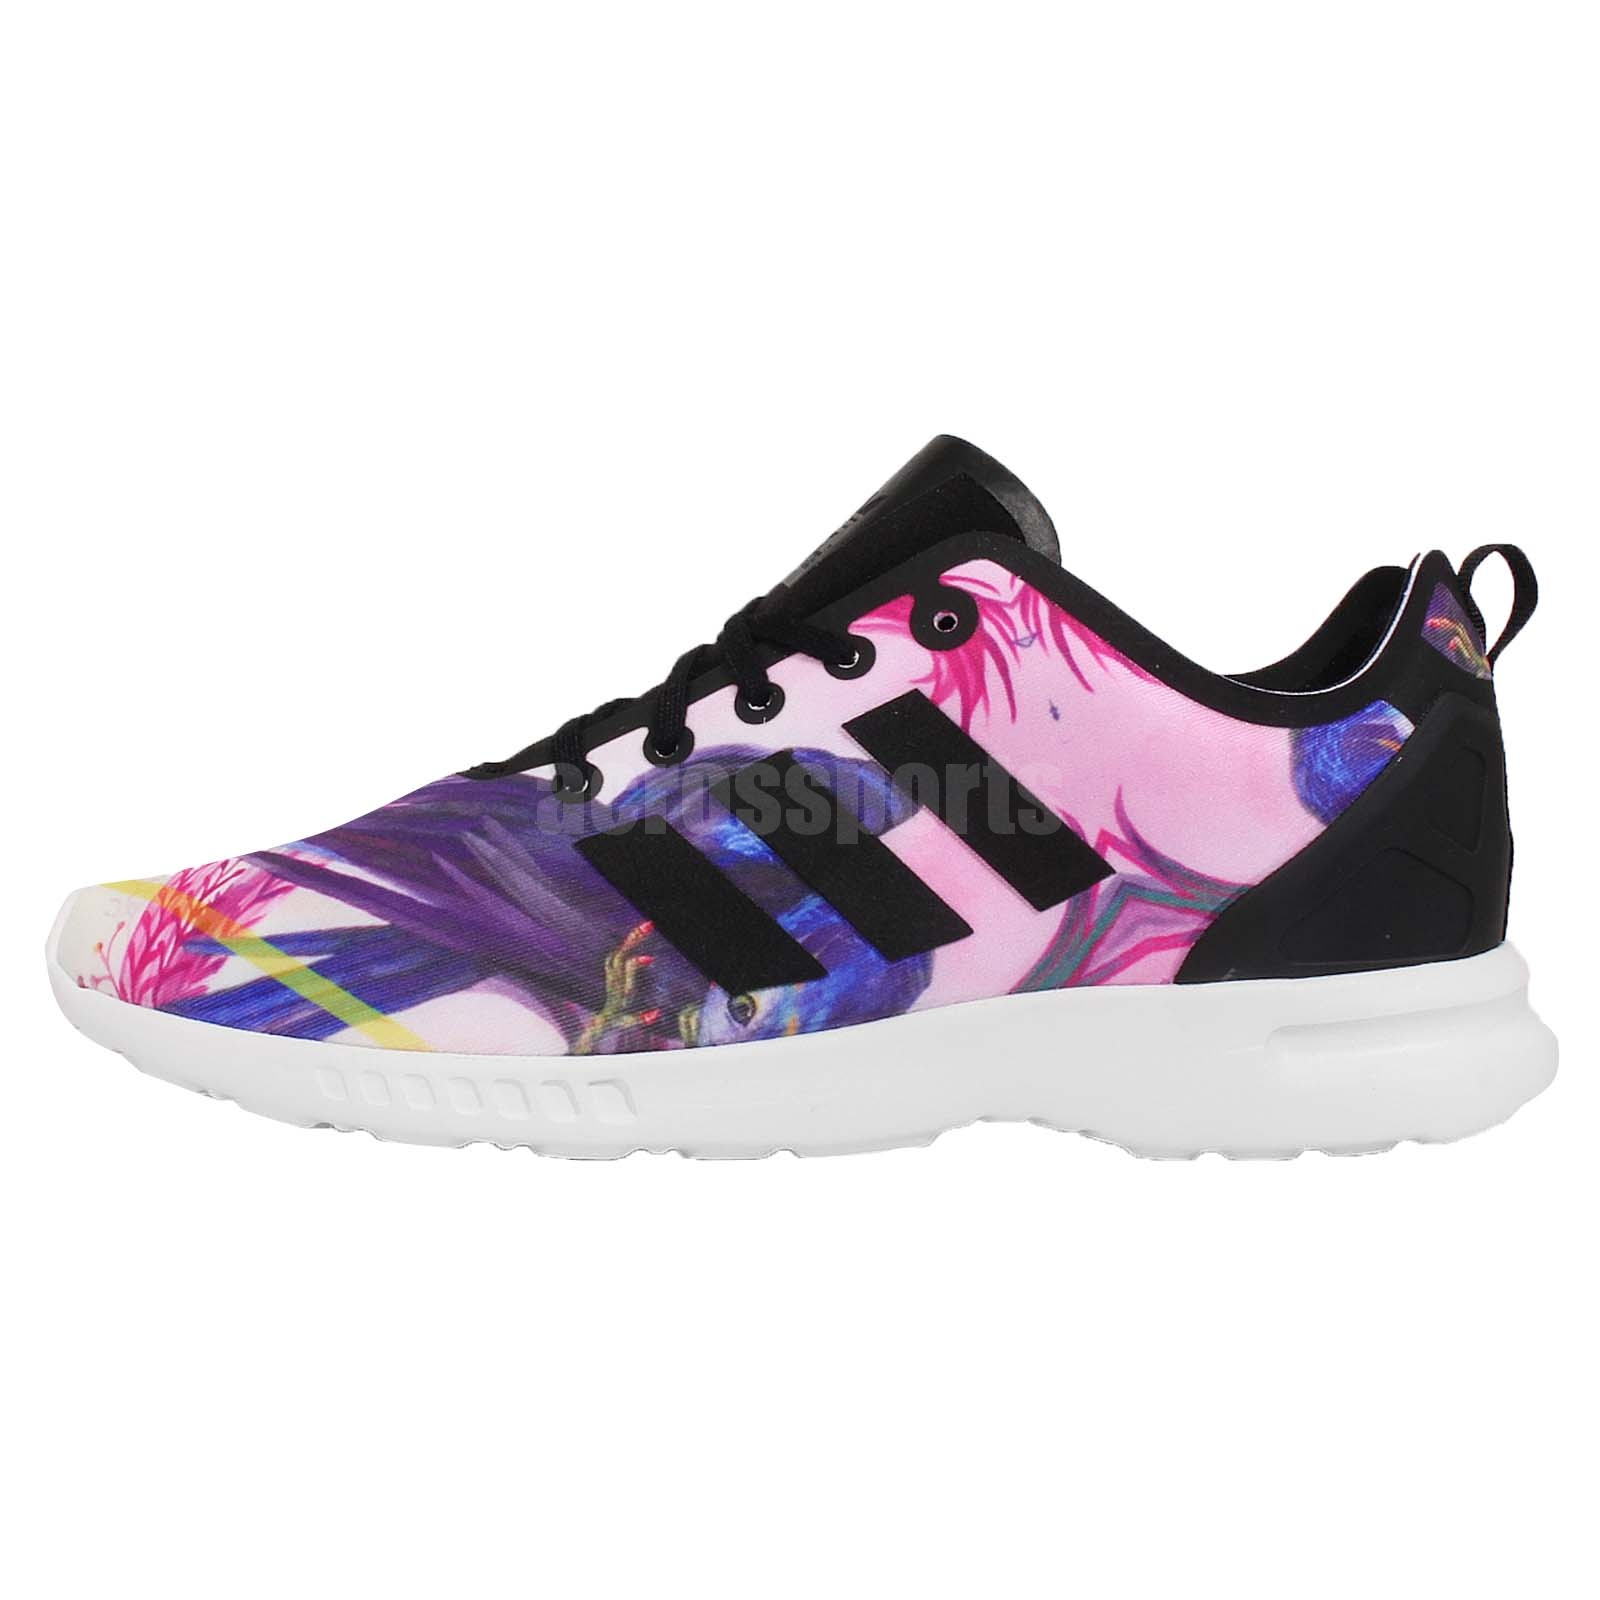 wholesale dealer 3fd74 b4f2e Adidas Zx Flux Floral Torsion